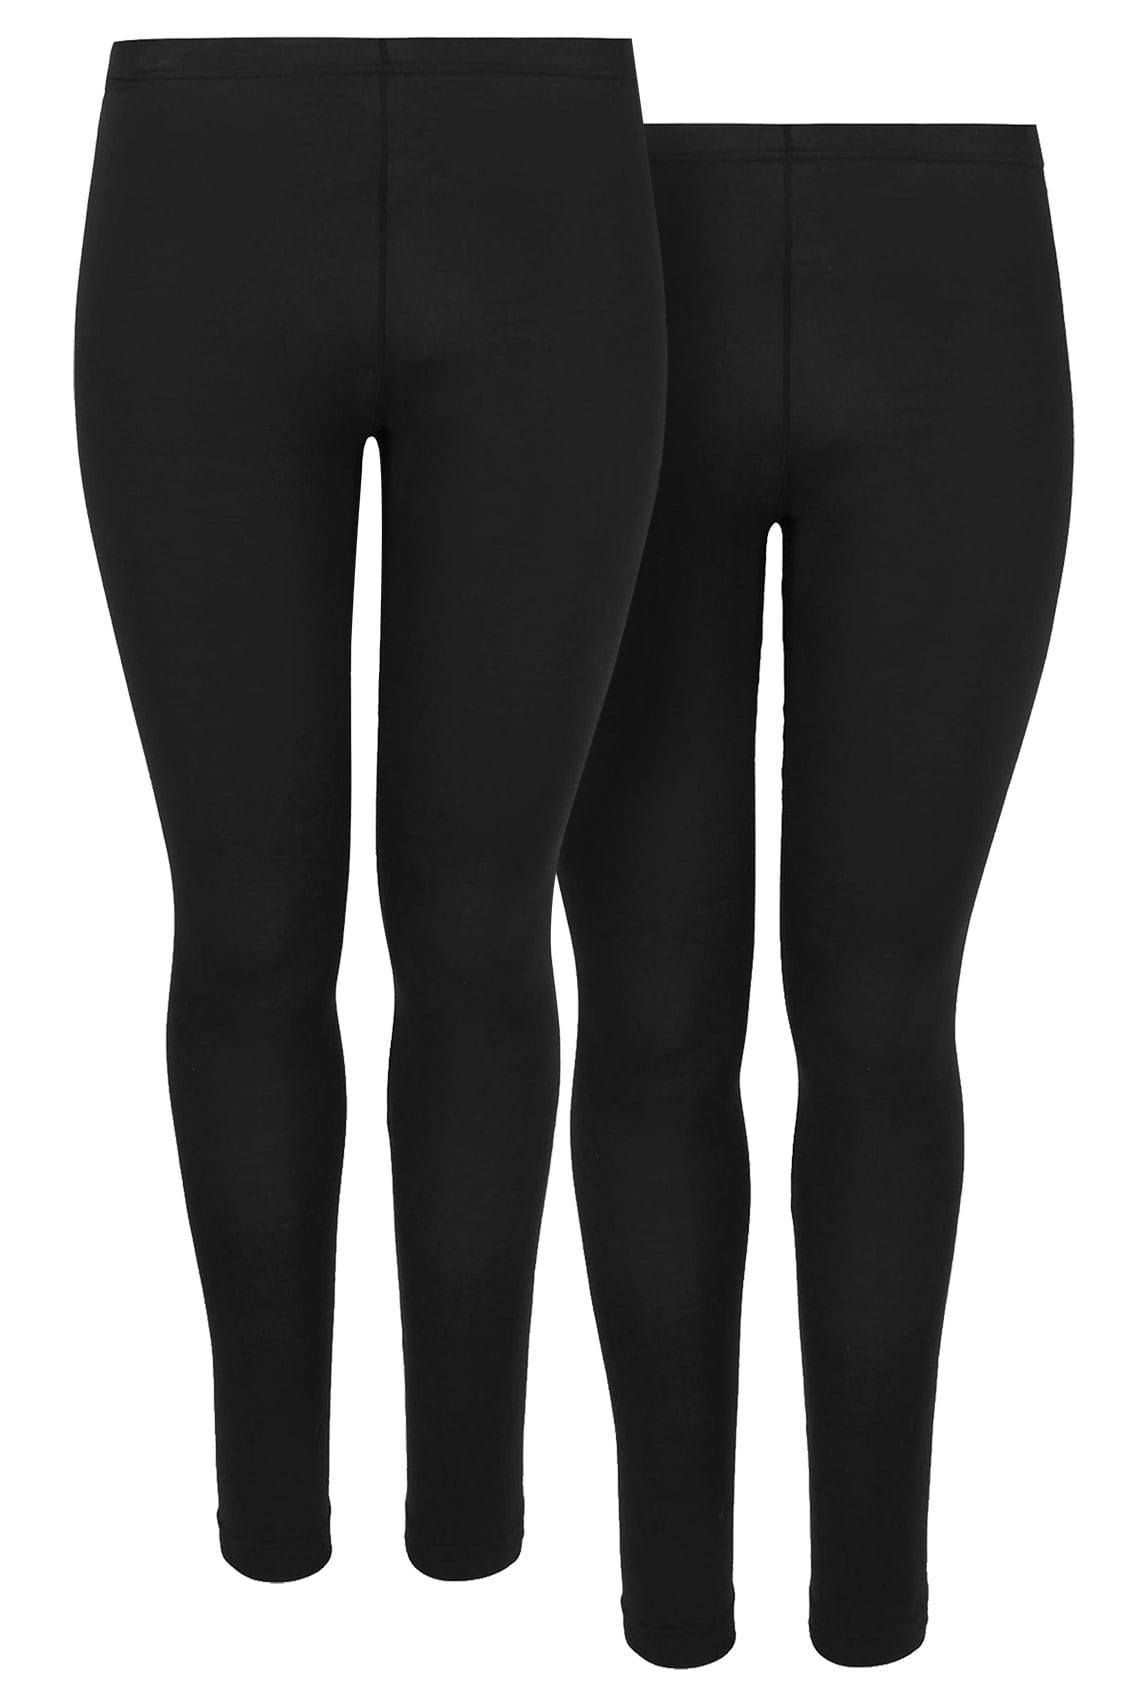 2 Pack Black Cotton Essential Leggings Plus Size 16 To 36